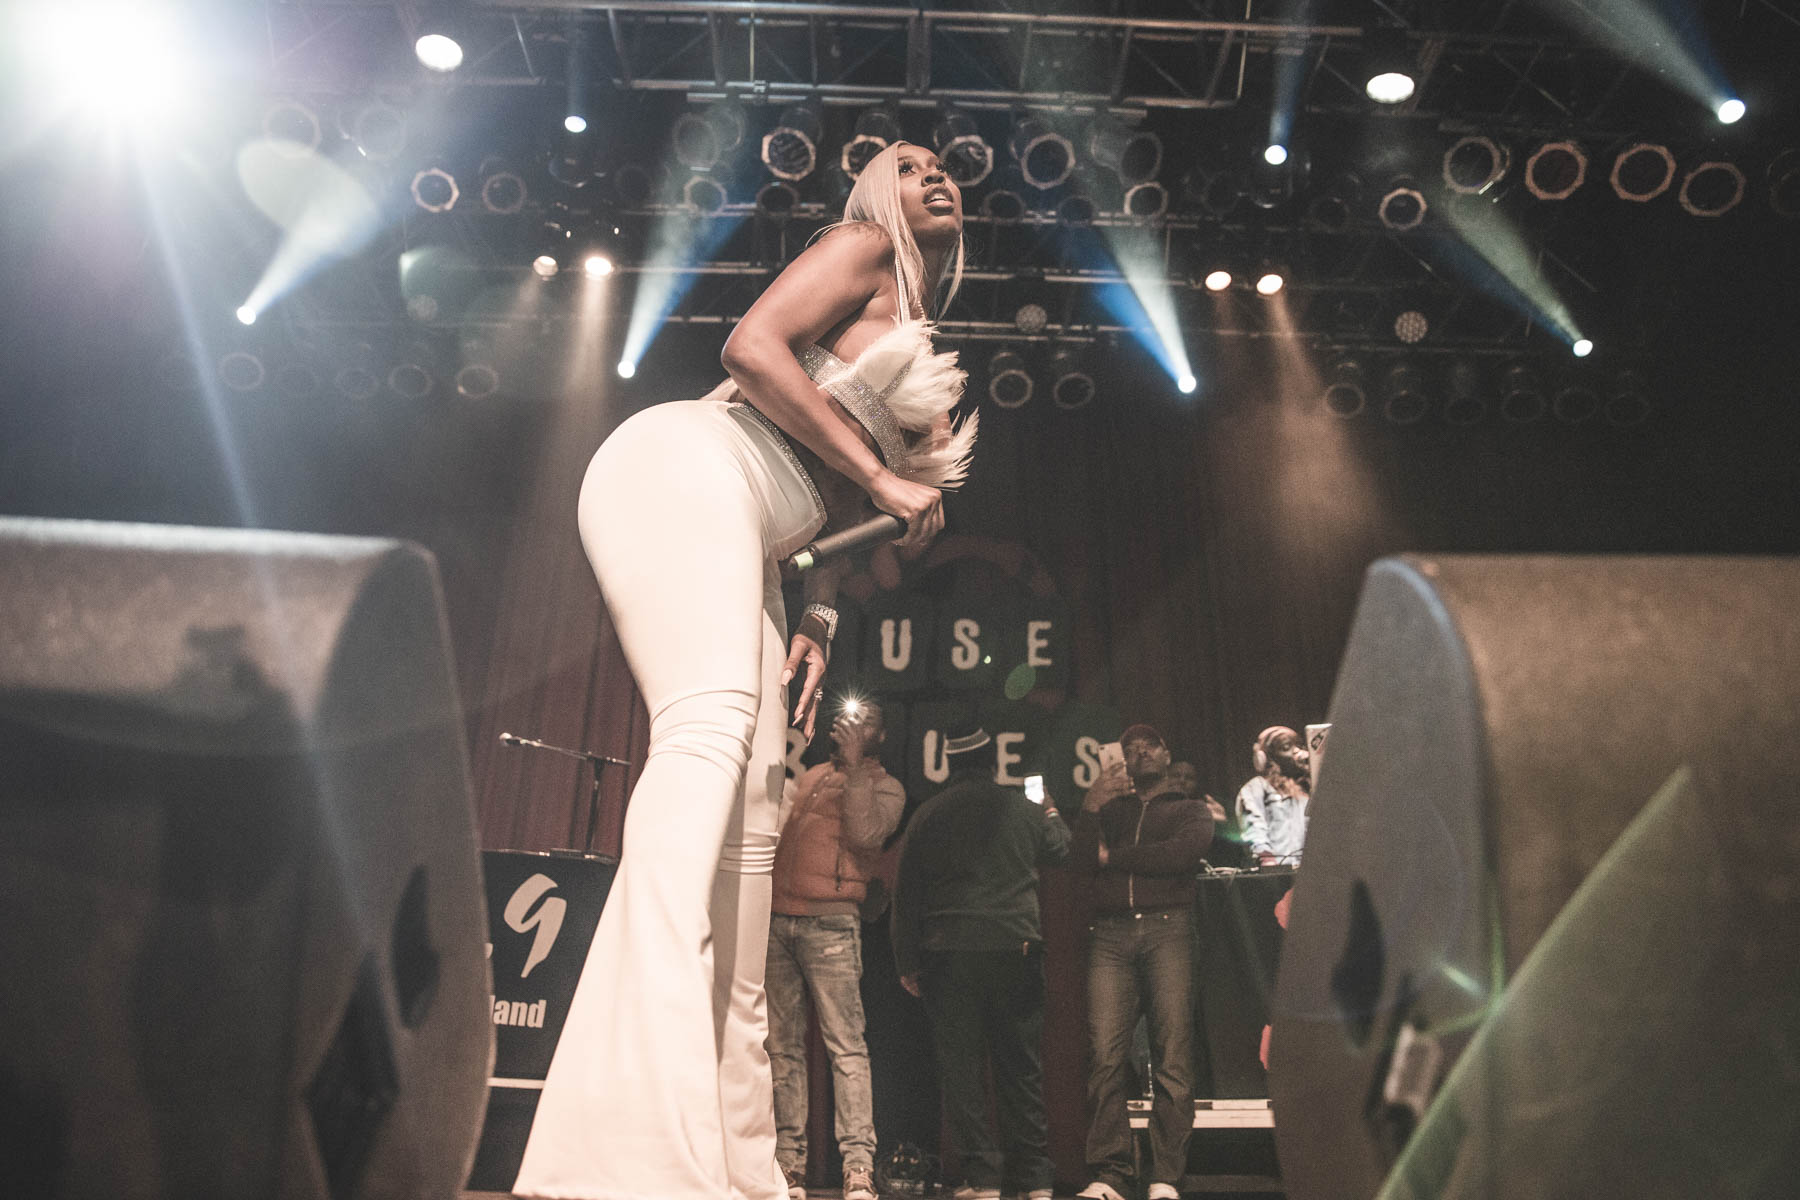 White out 2018 with Kashdoll